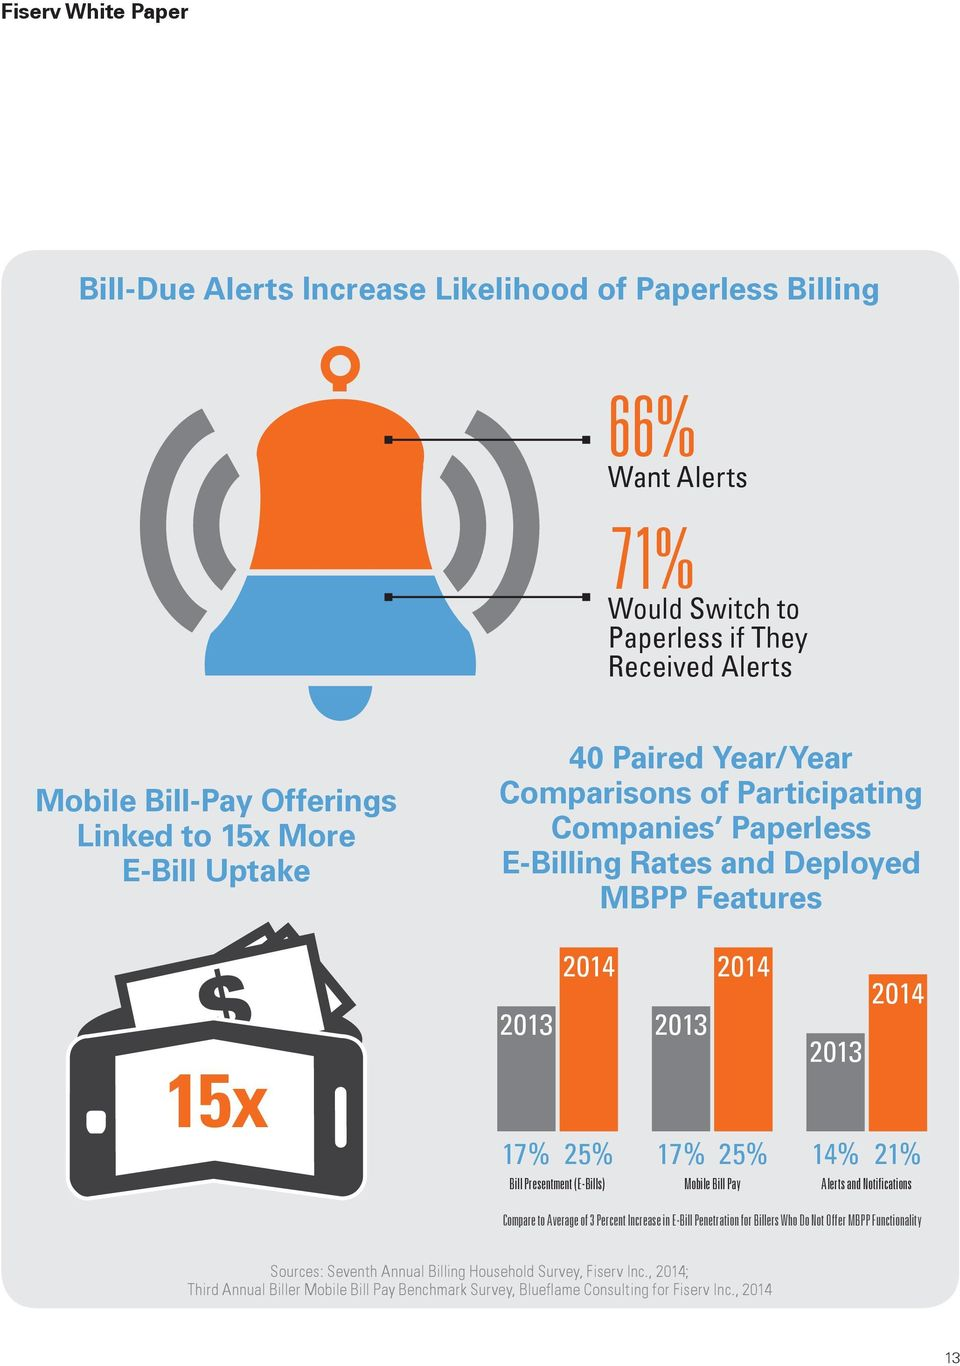 14% 21% Bill Presentment (E-Bills) Mobile Bill Pay Alerts and Notifications Compare to Average of 3 Percent Increase in E-Bill Penetration for Billers Who Do Not Offer MBPP